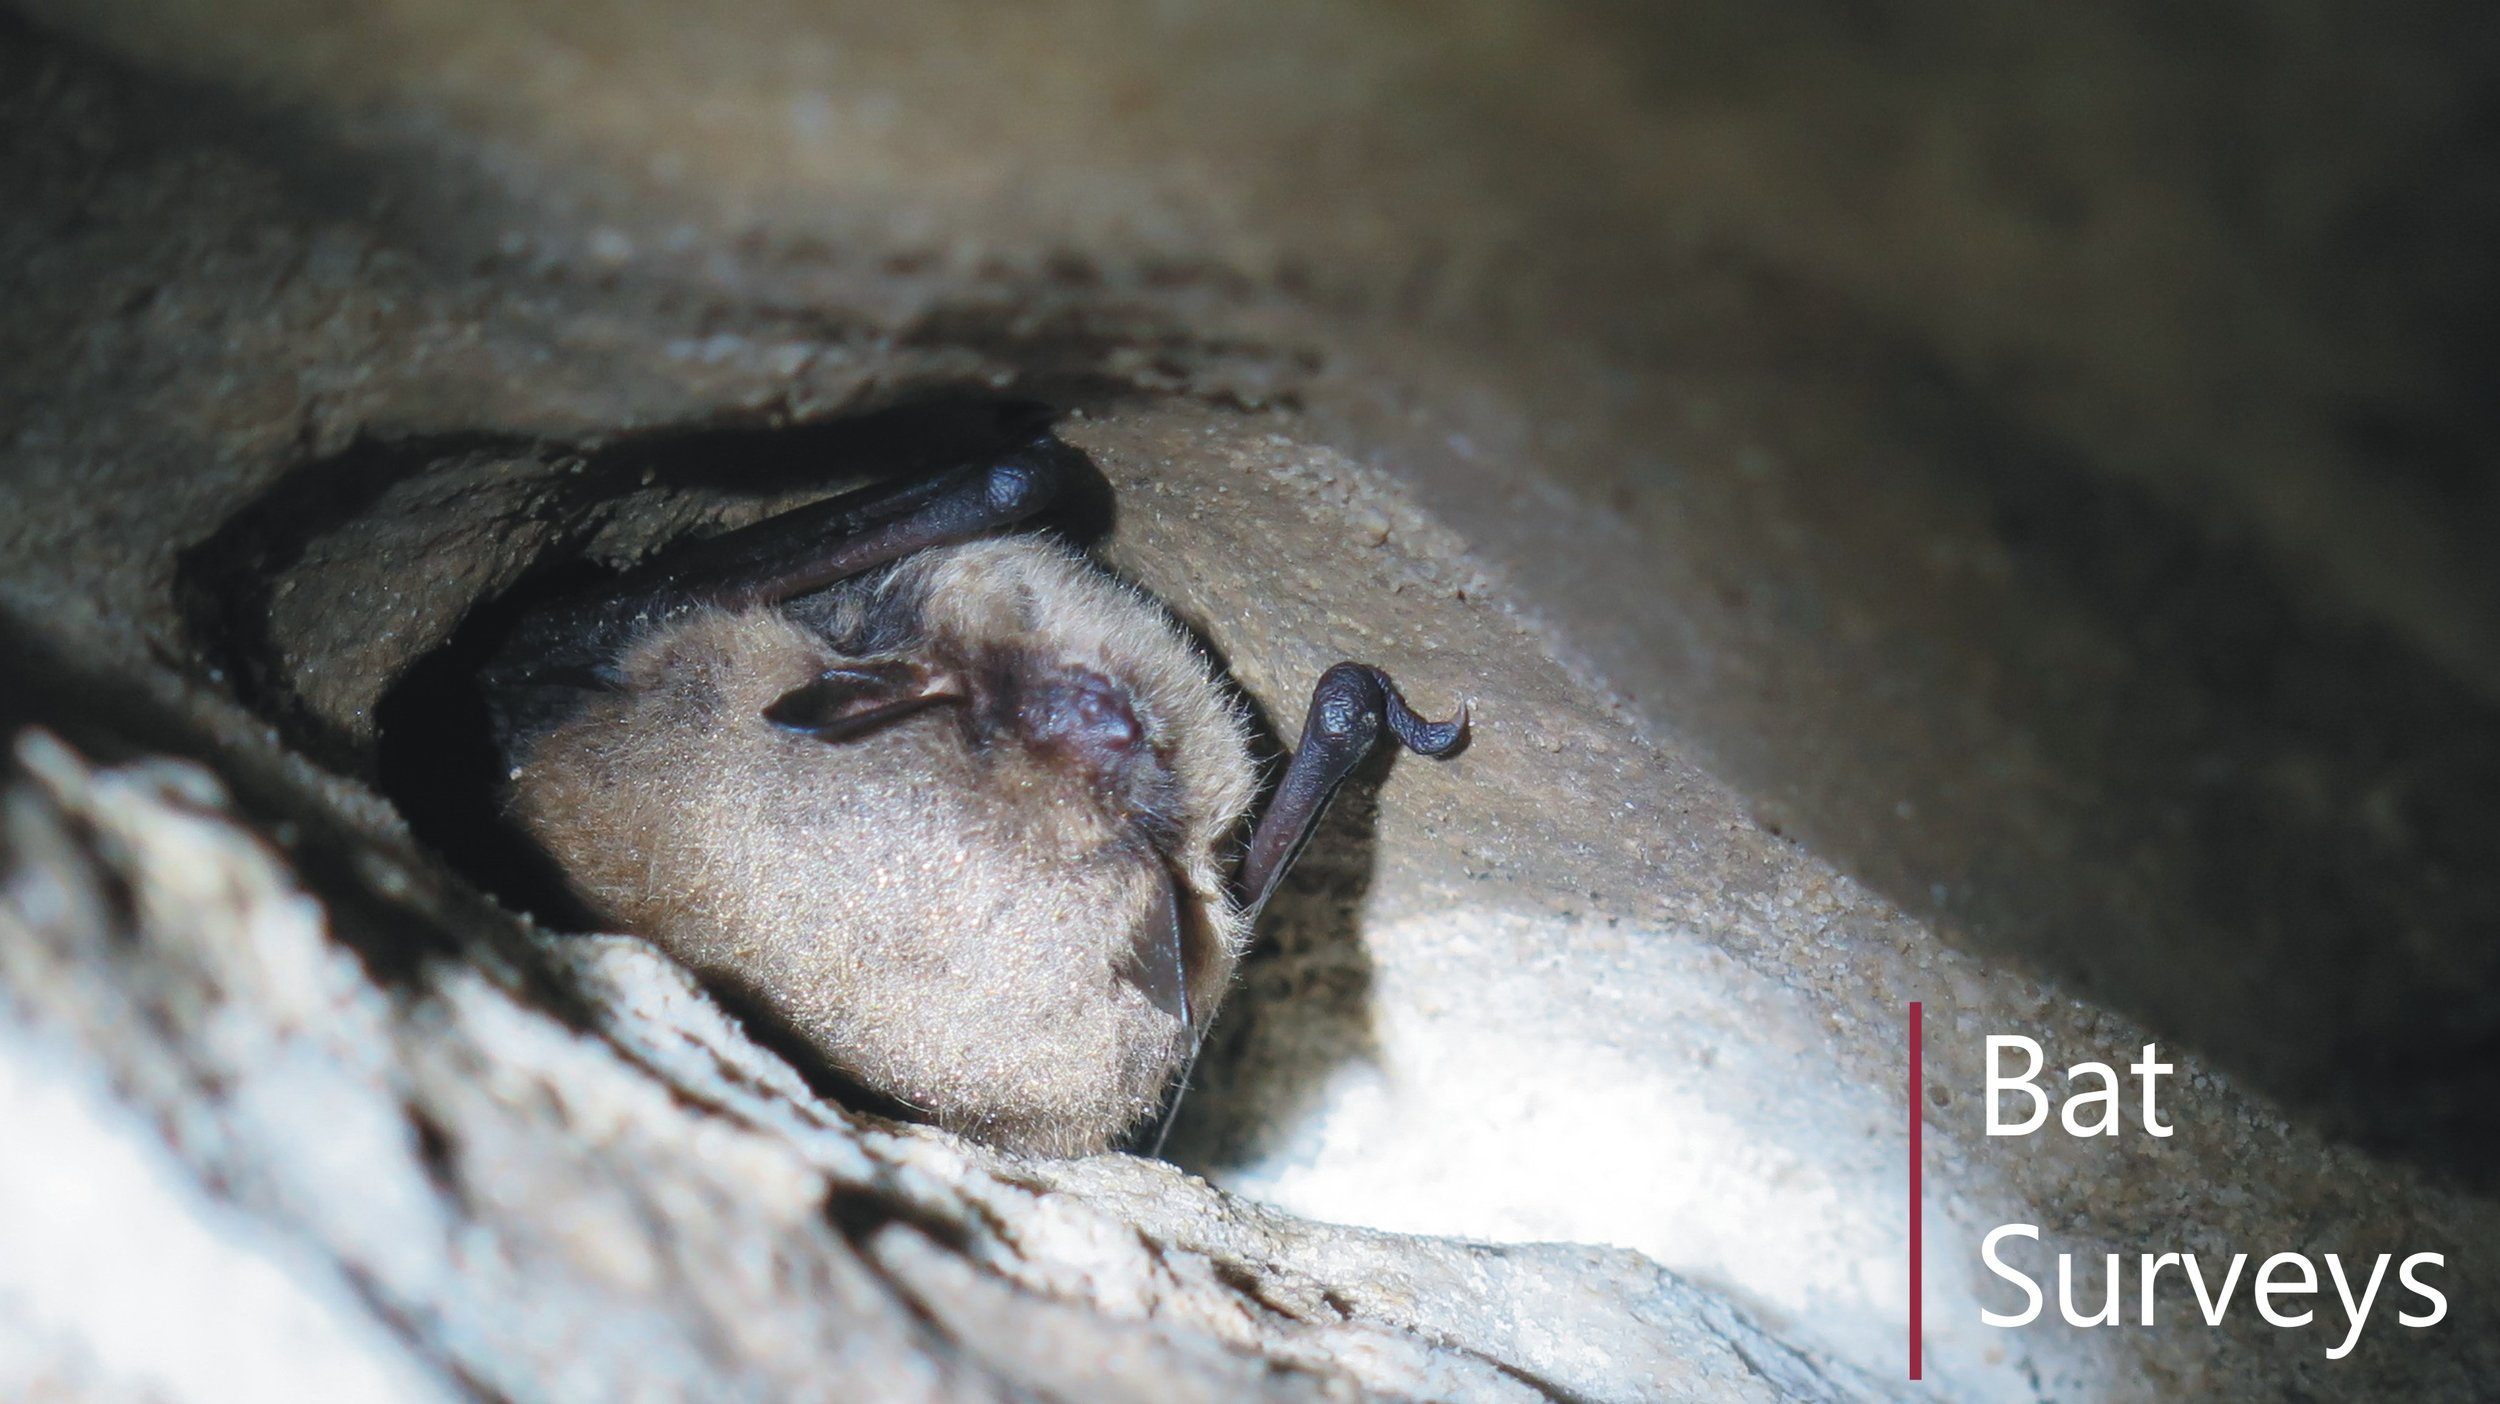 Bat building and hibernation survey in Leicestershire